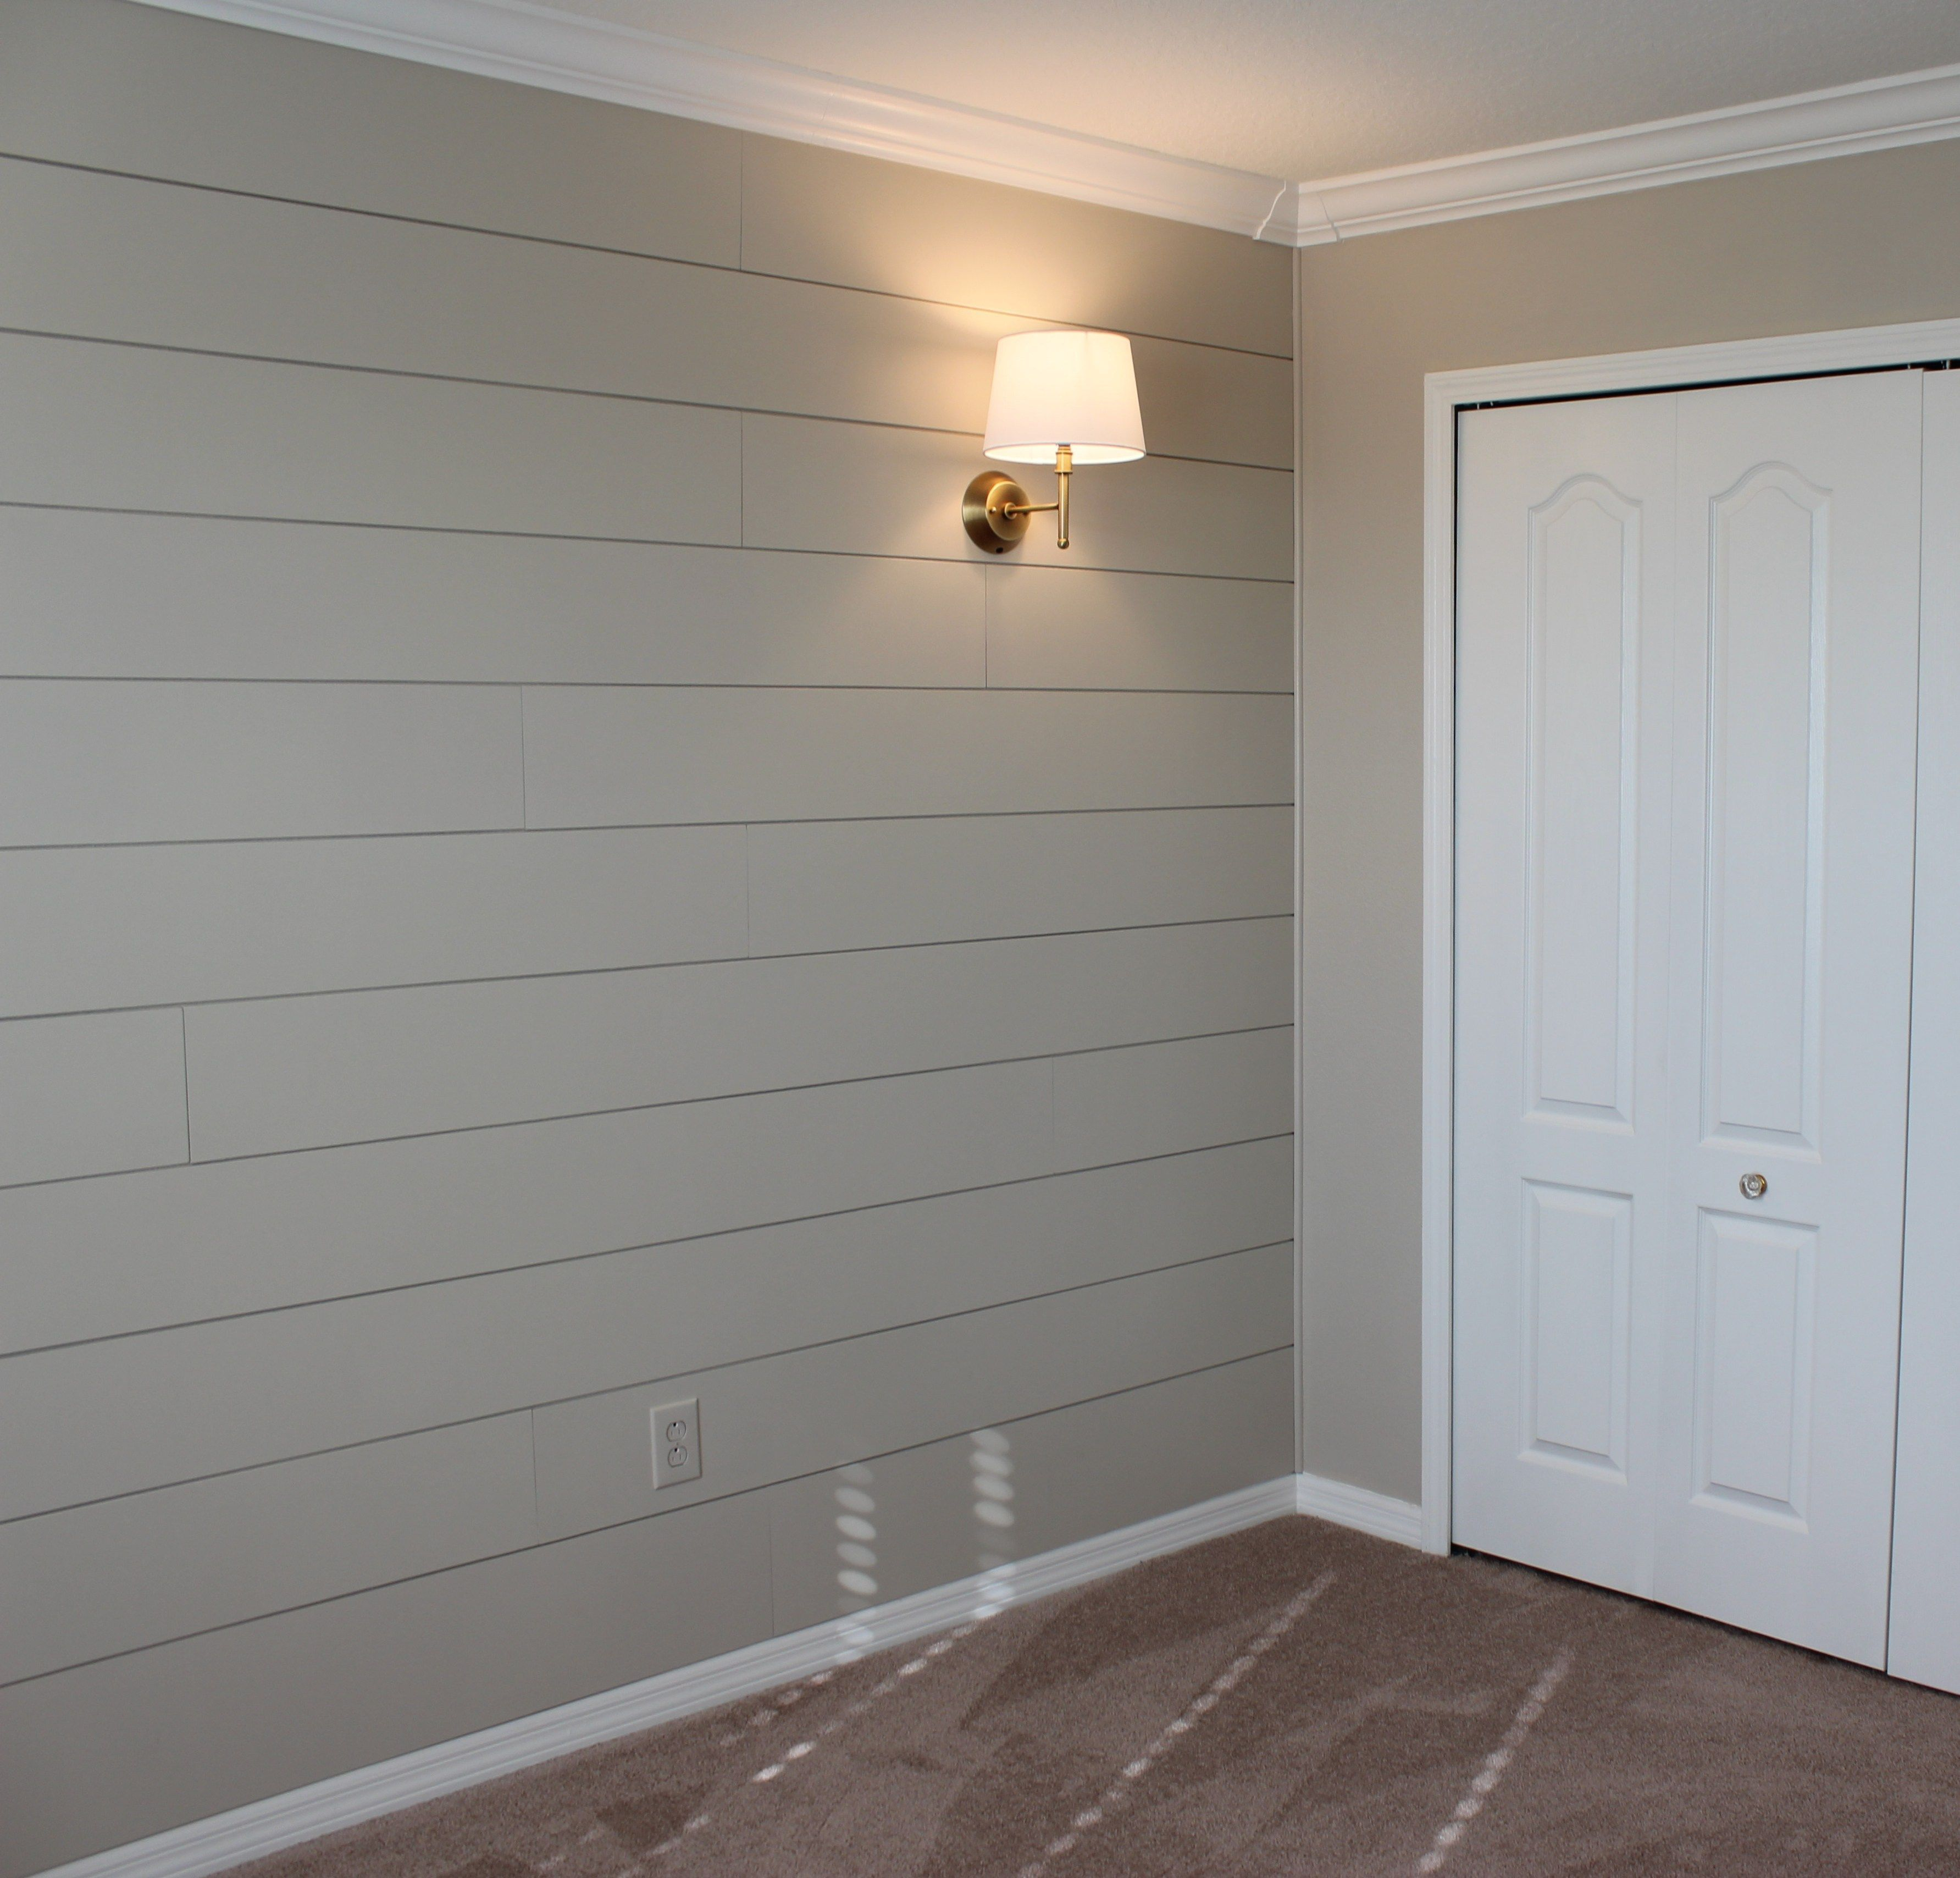 Diy Accent Wall With Wood Trim: DIY Wood Accent Nursery Wall - Google Search